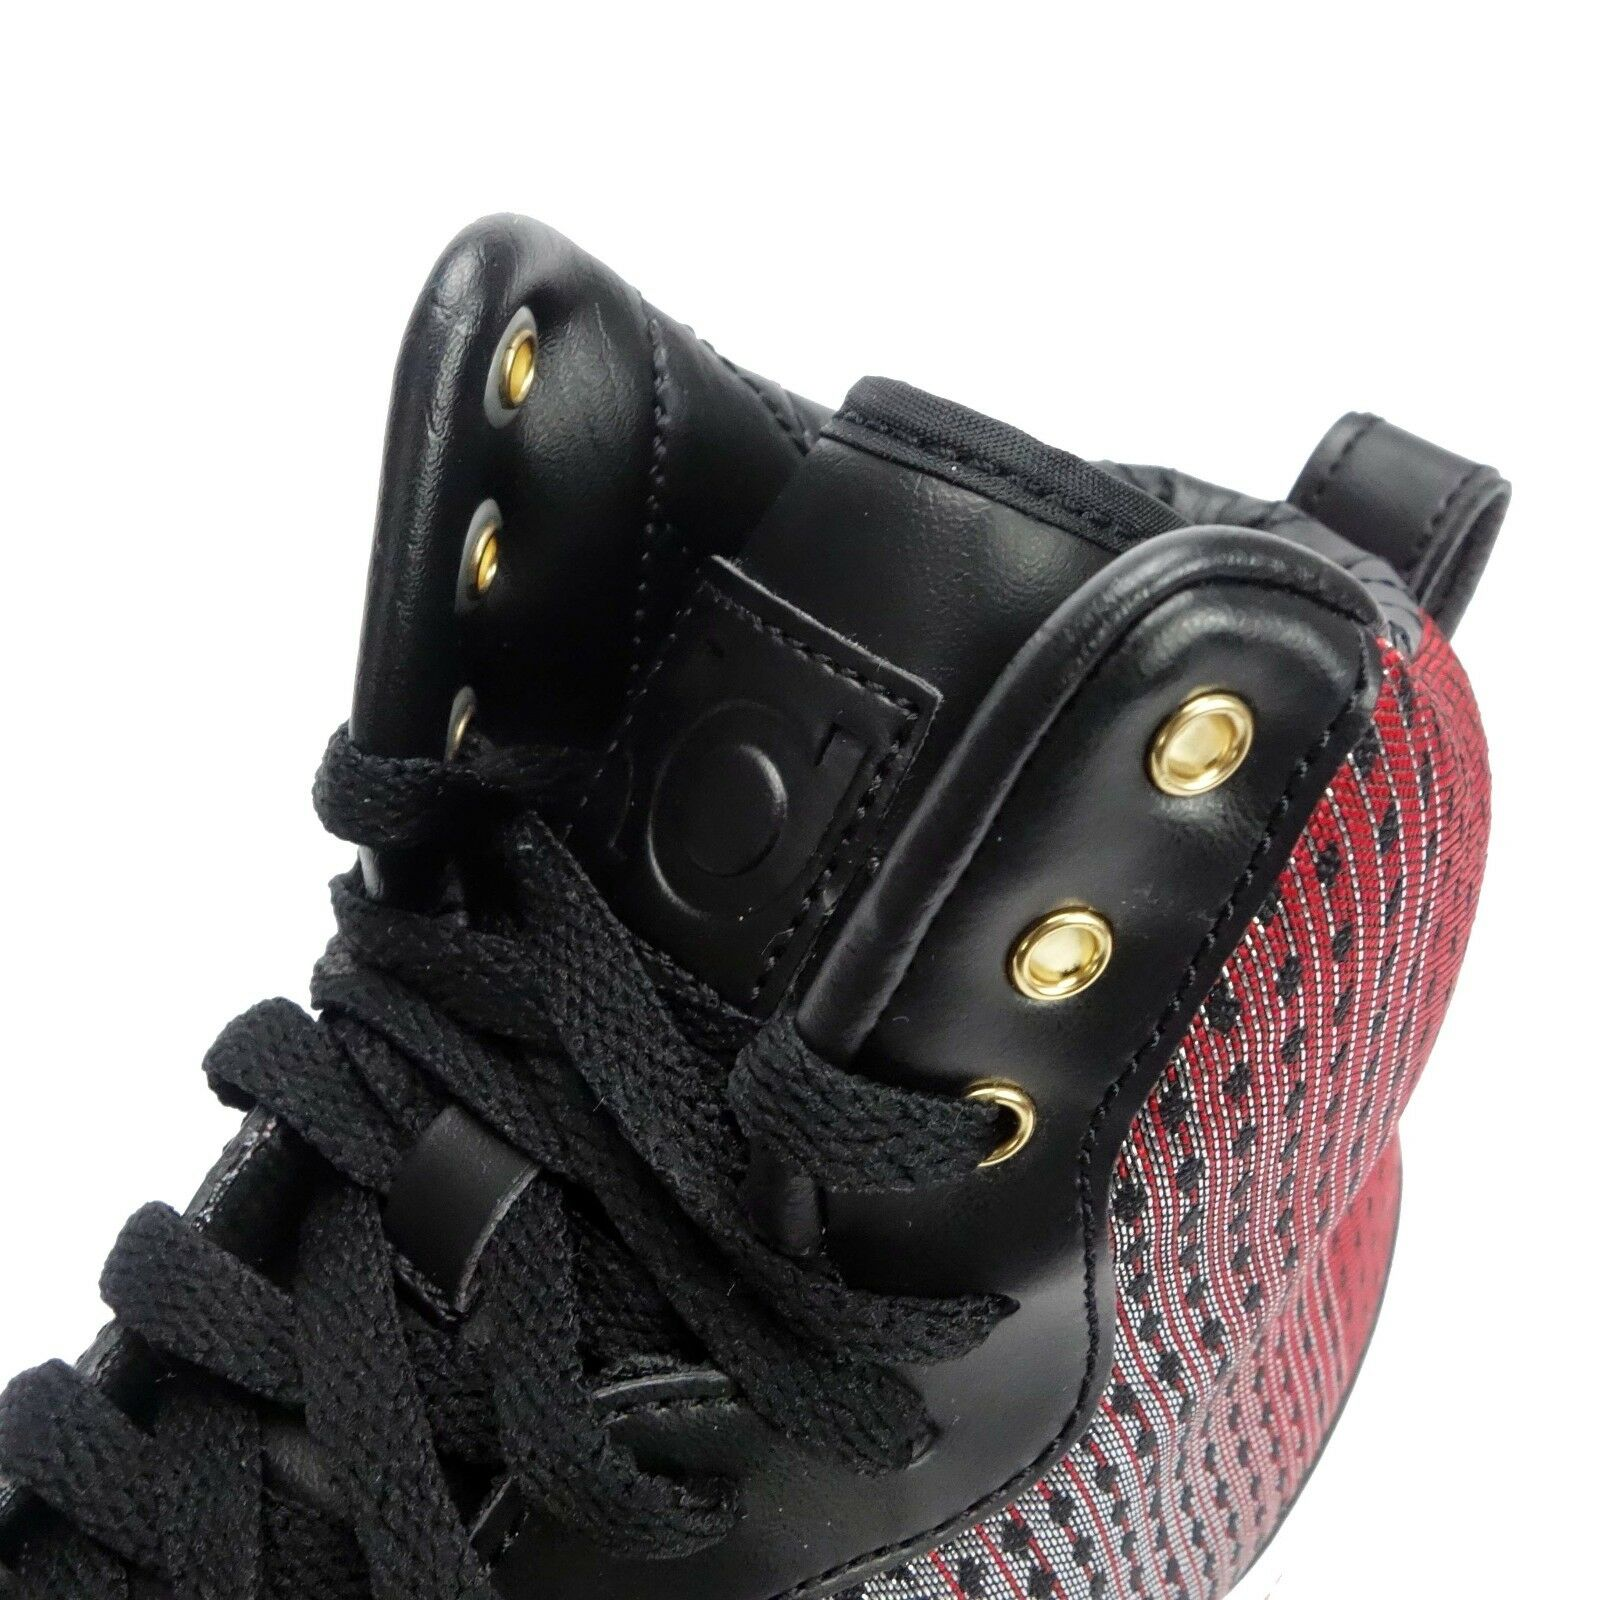 Nike KD VIII NSW Lifestyle Men's Shoes Trainers Black/Red